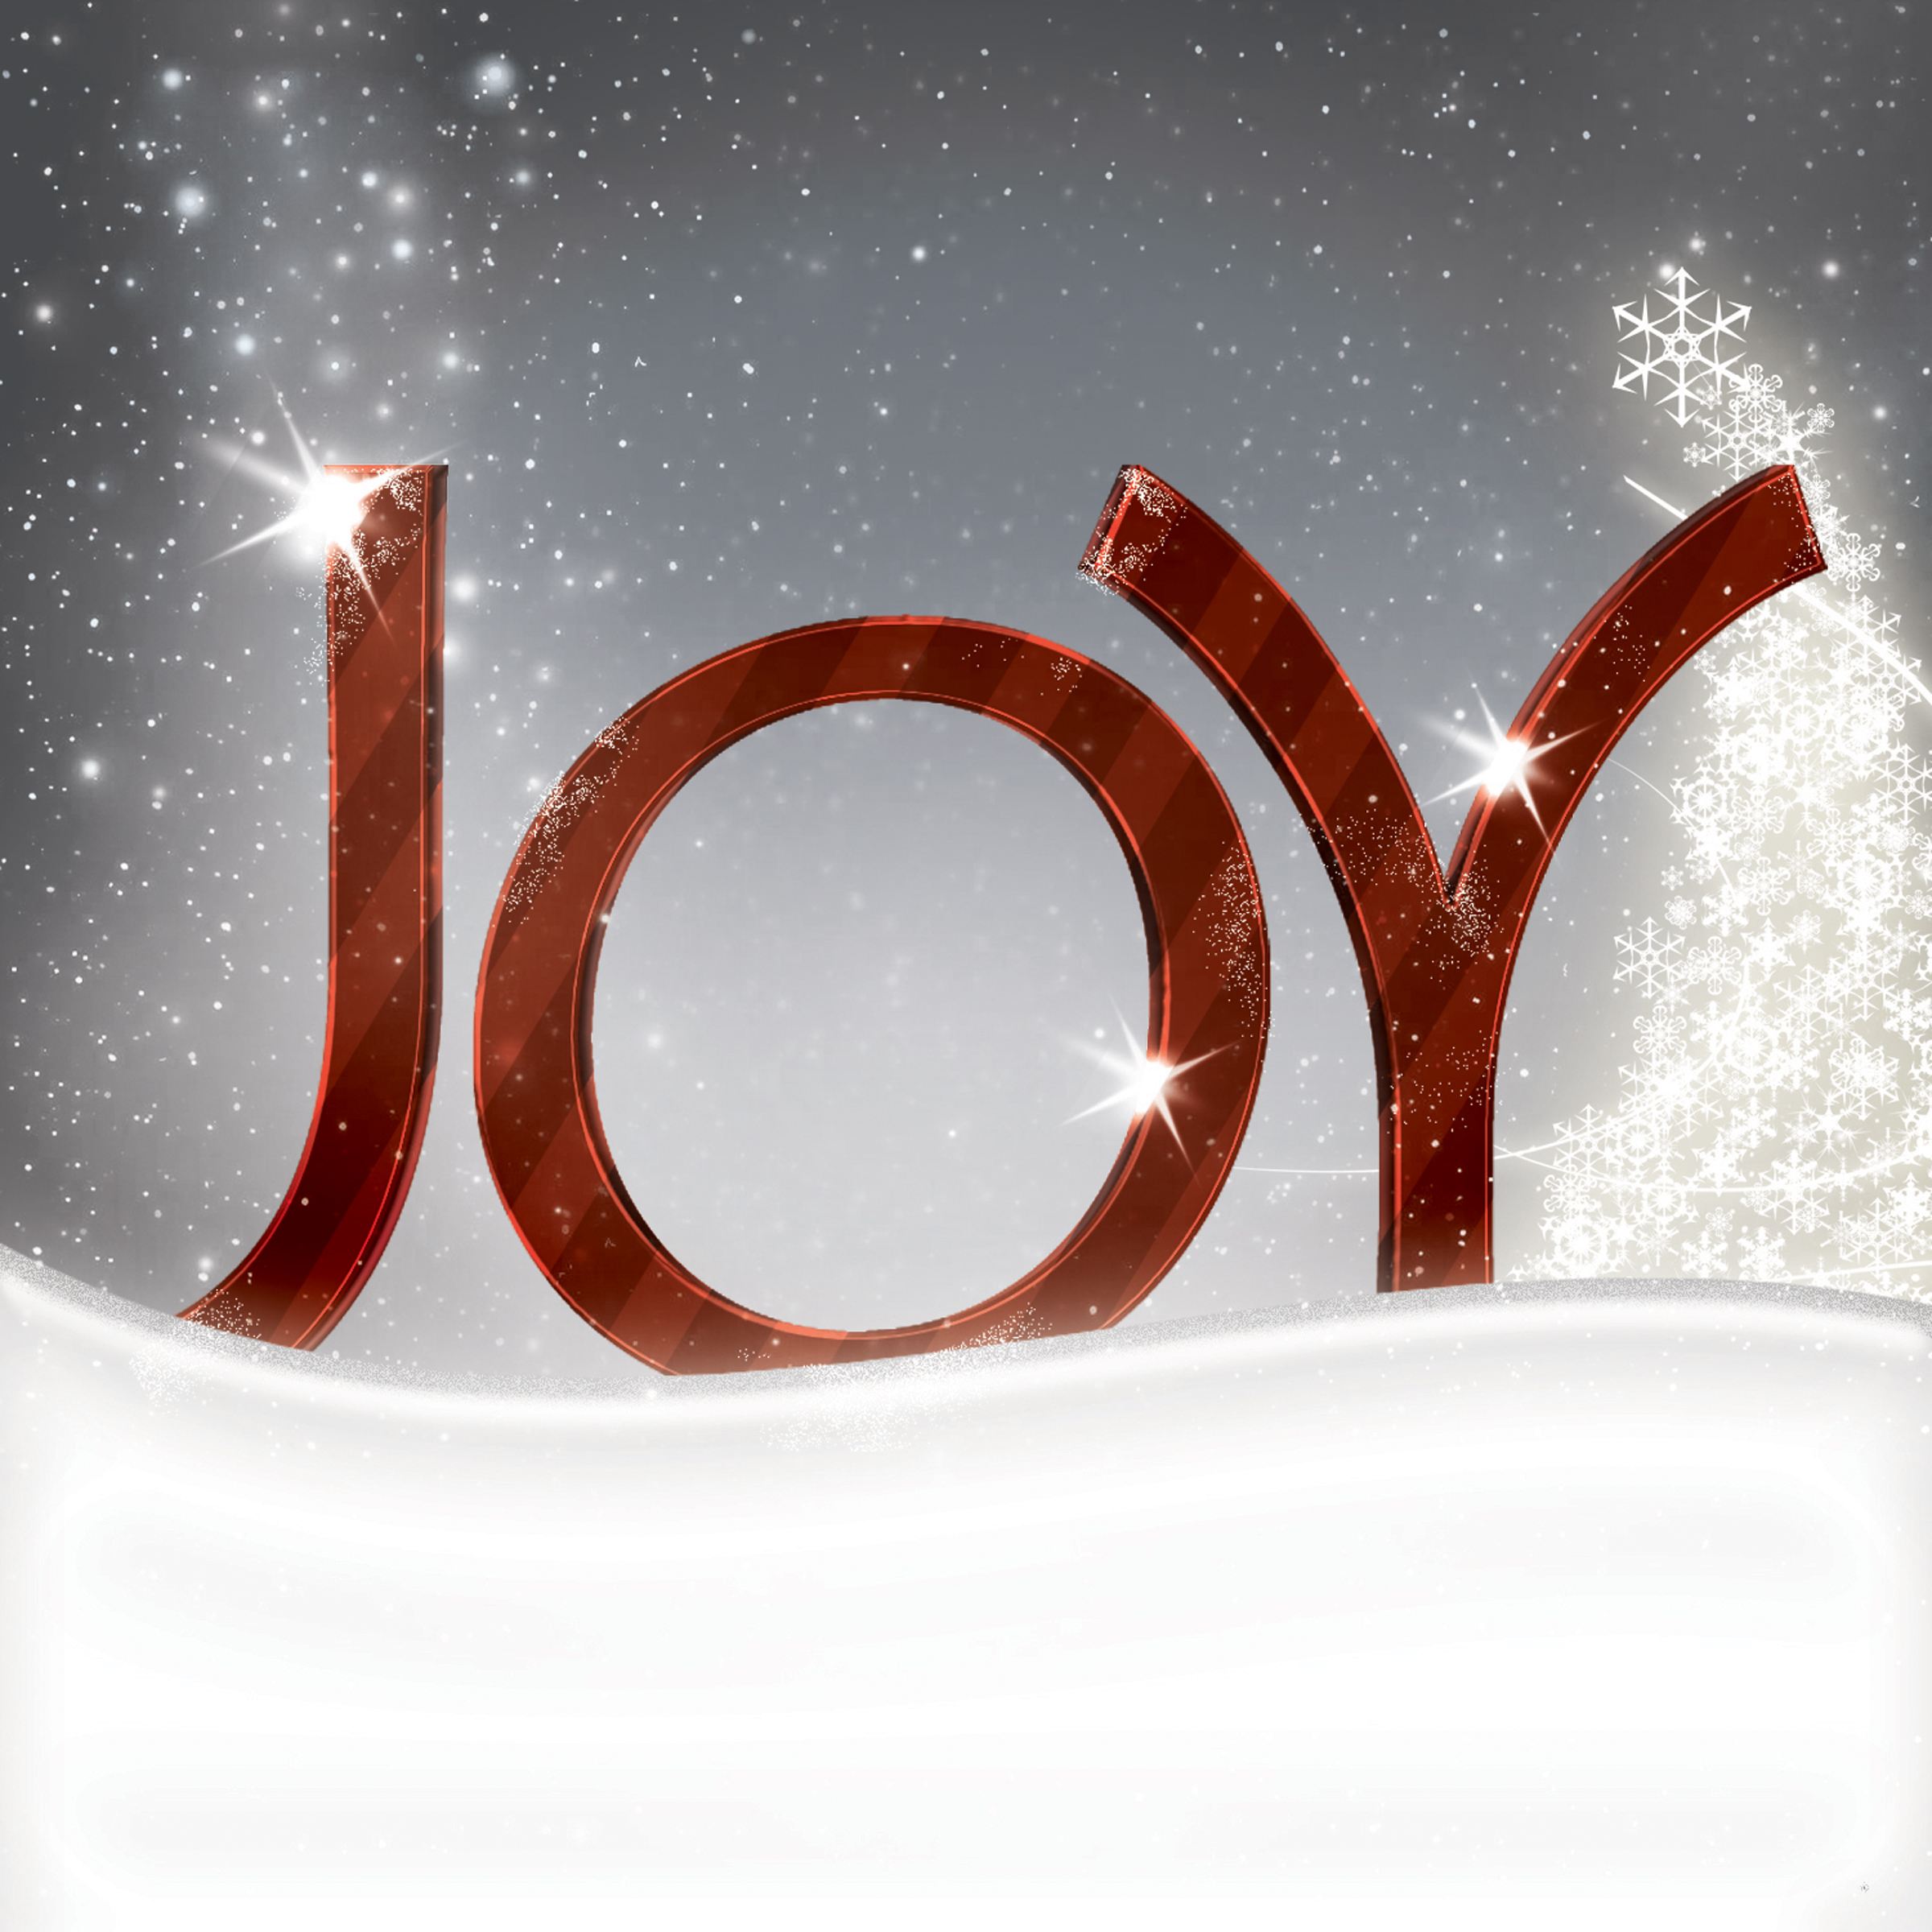 Merry Christmas! May You Be More on Fire and Filled With Greater Joy ...